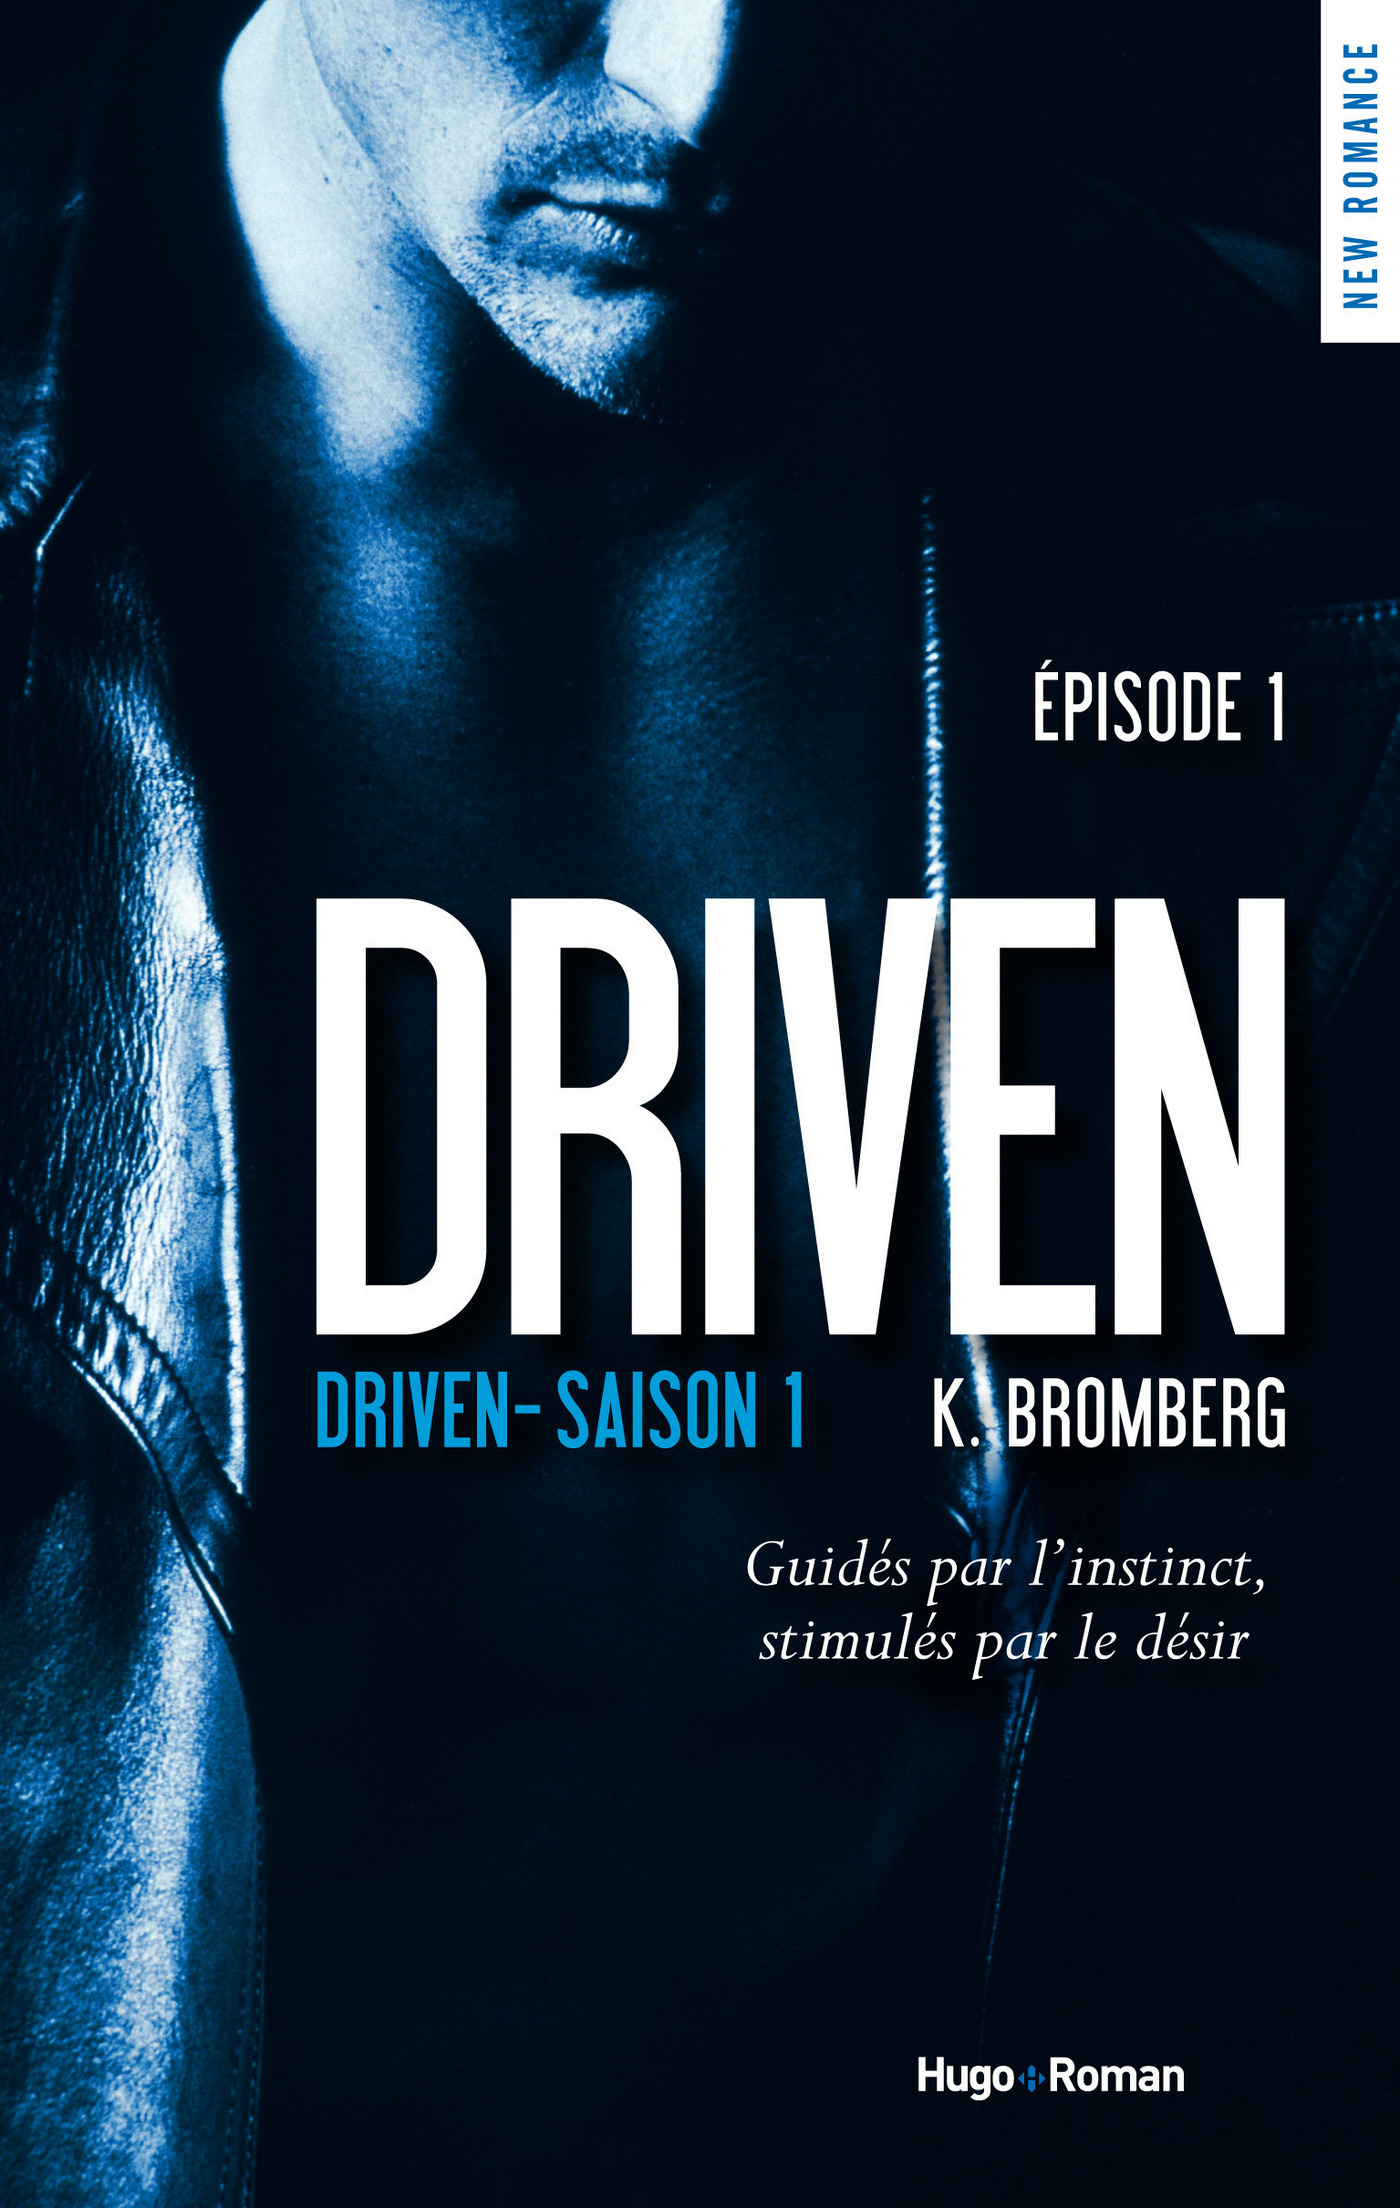 Driven Saison 1 Episode 1